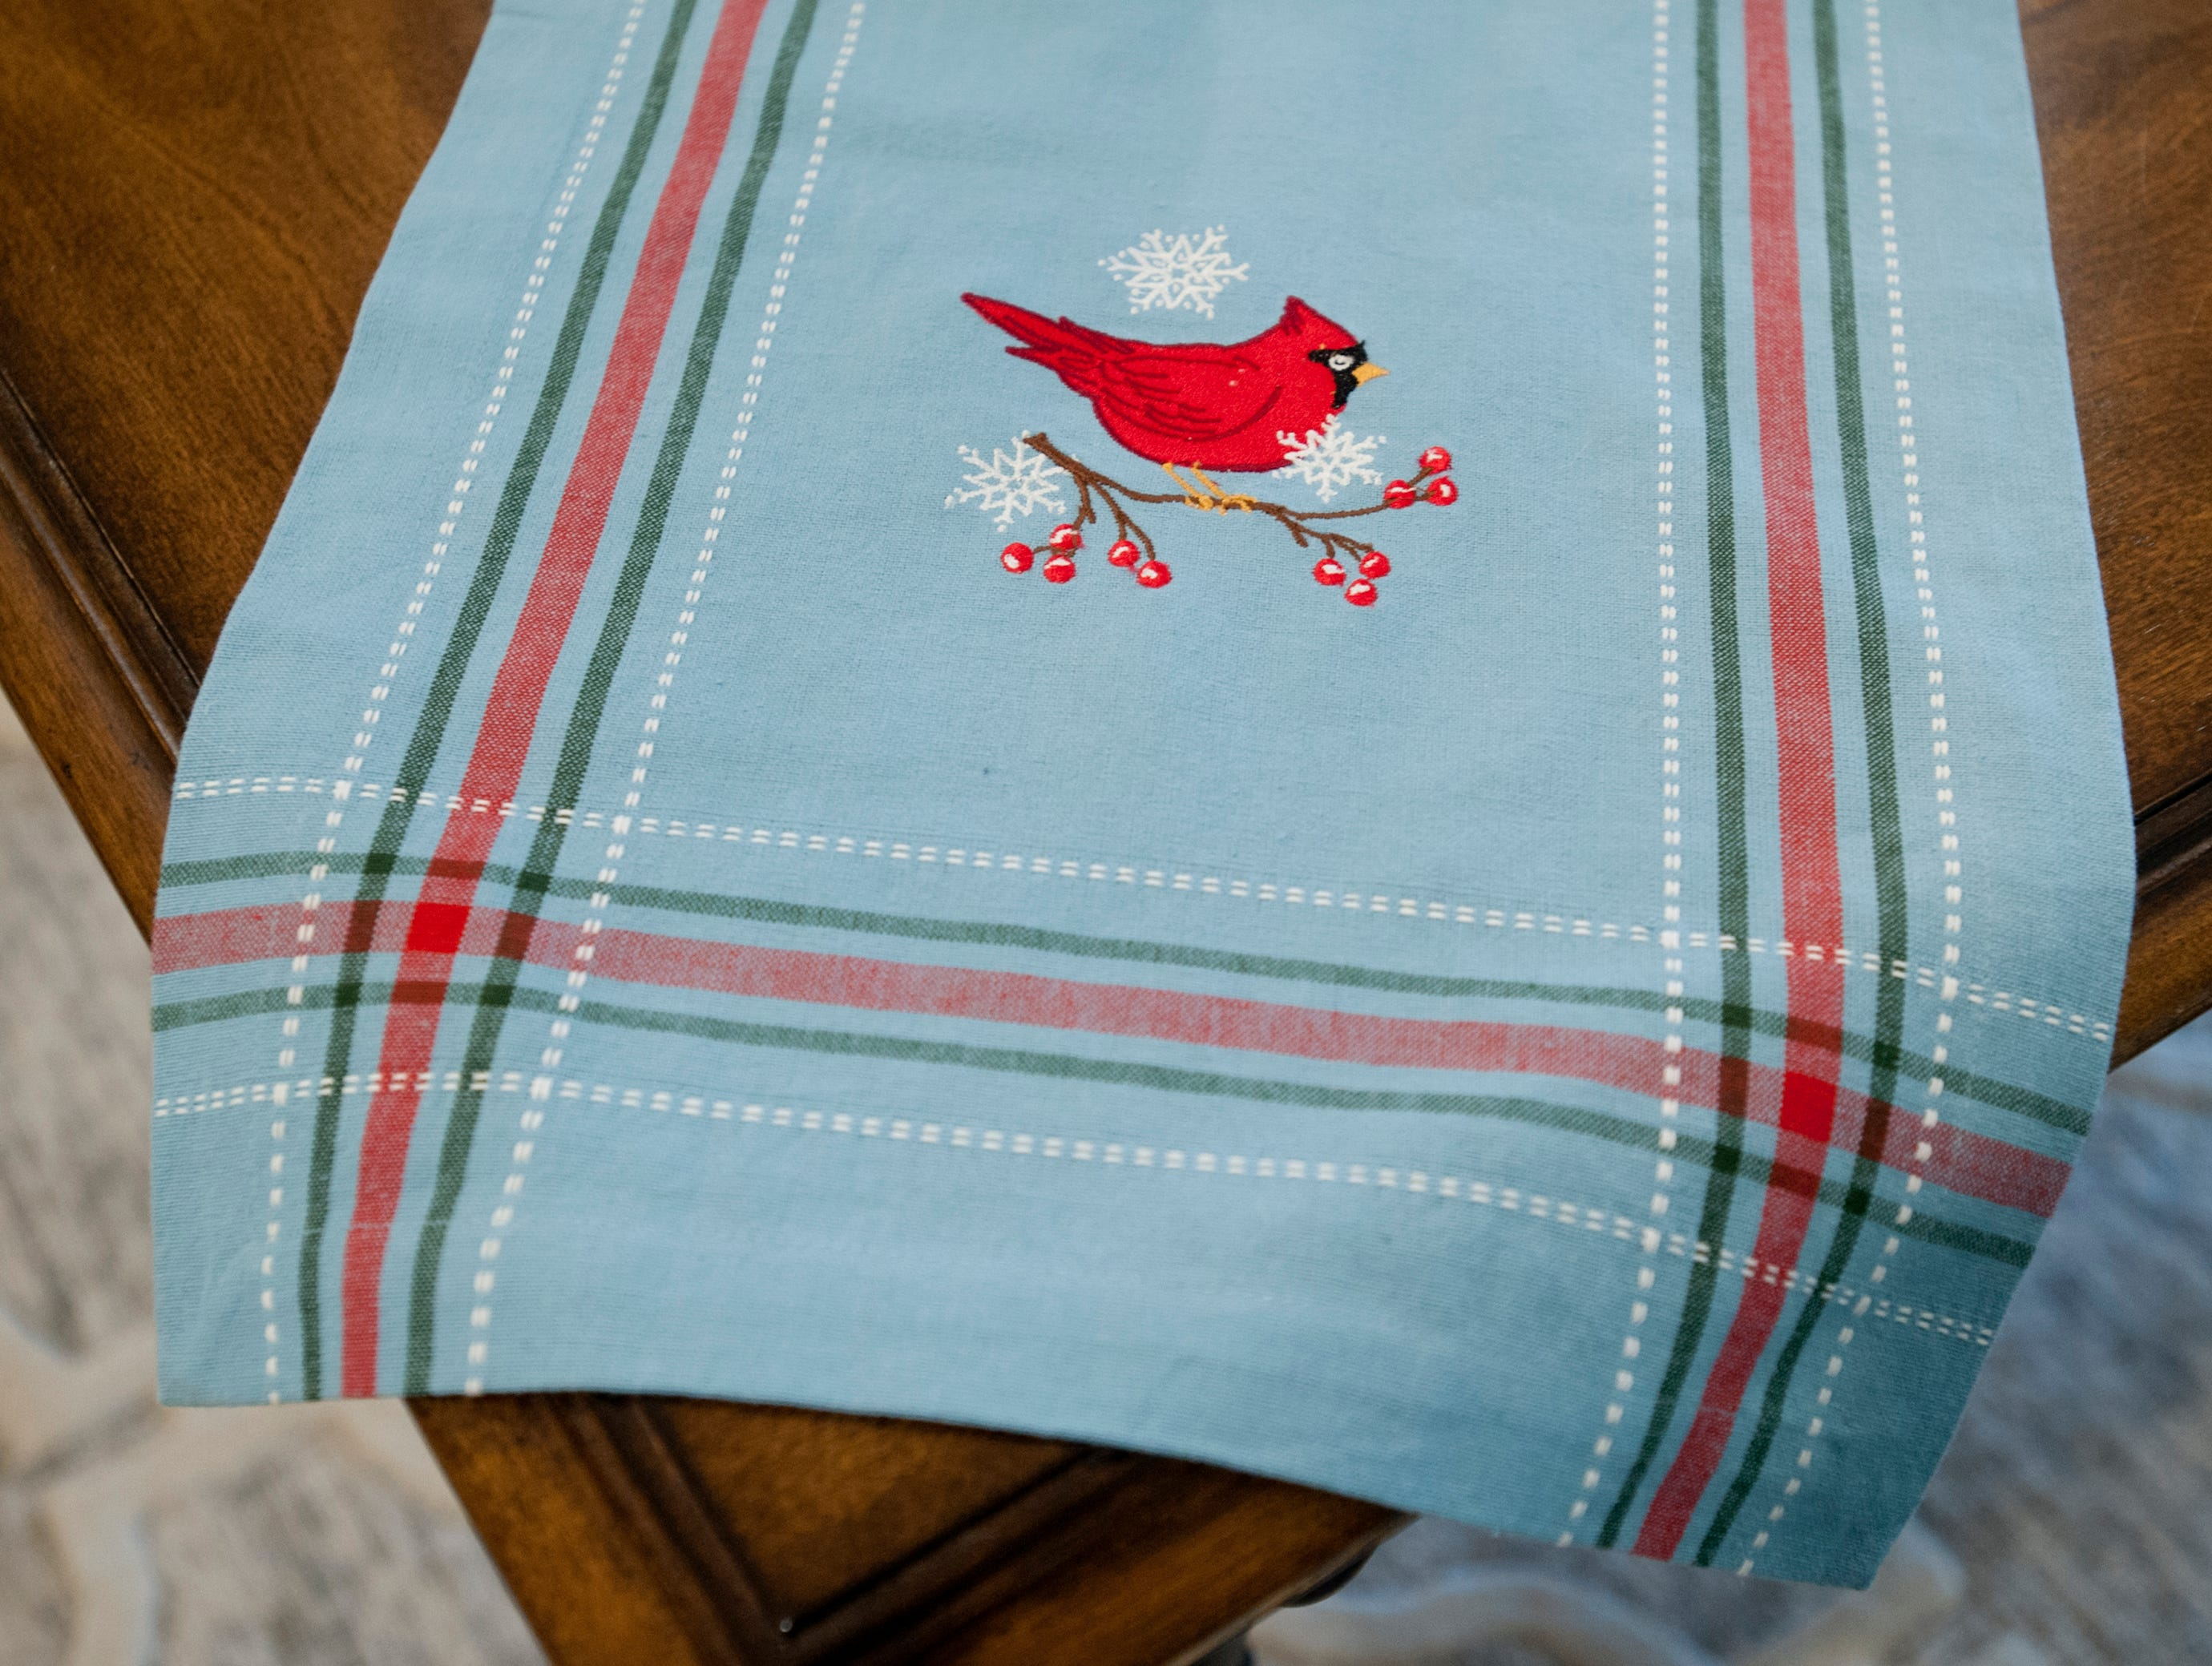 Detail of a Cardinal runner on the basement kitchen table.